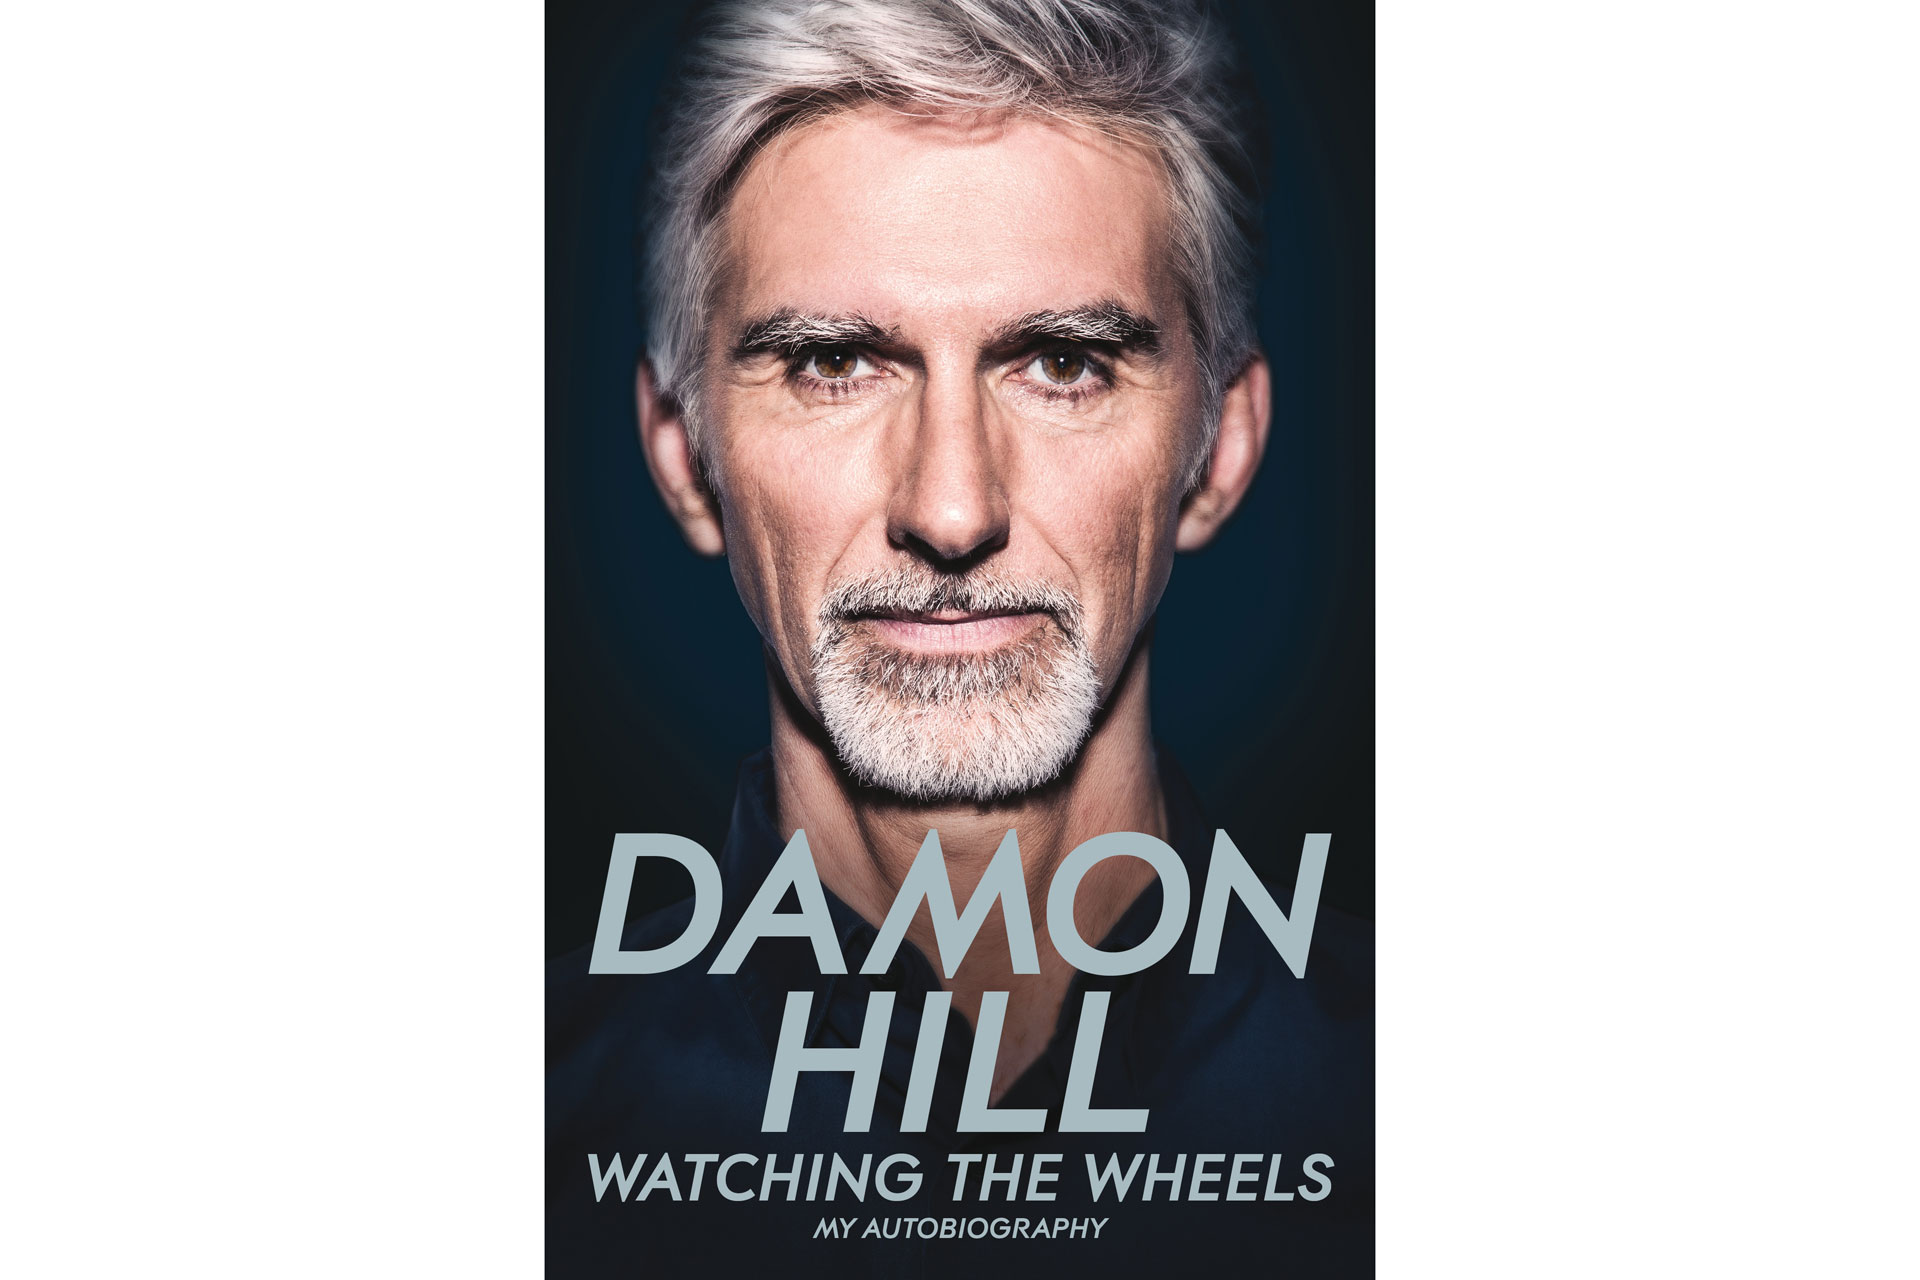 """""""Watching the Wheels"""" - my autobiography by Damon Hill"""